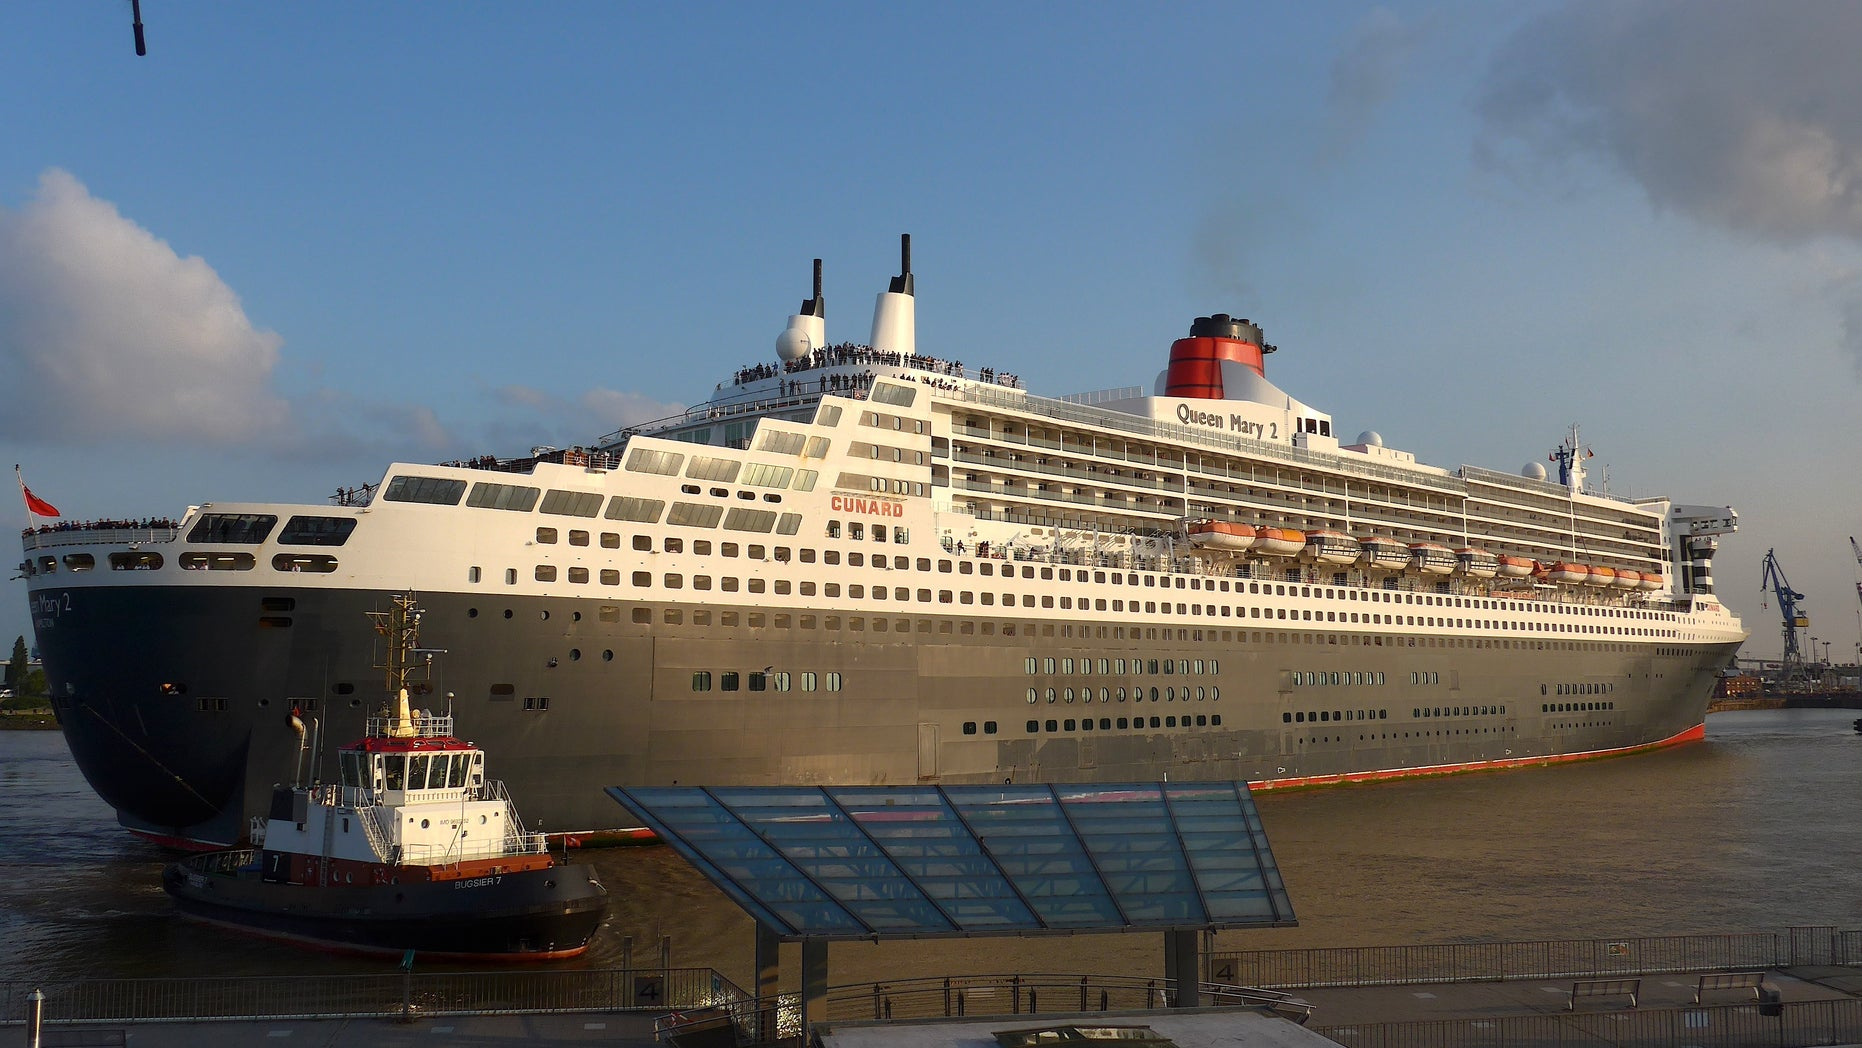 The outside view of the Remastered Queen Mary 2